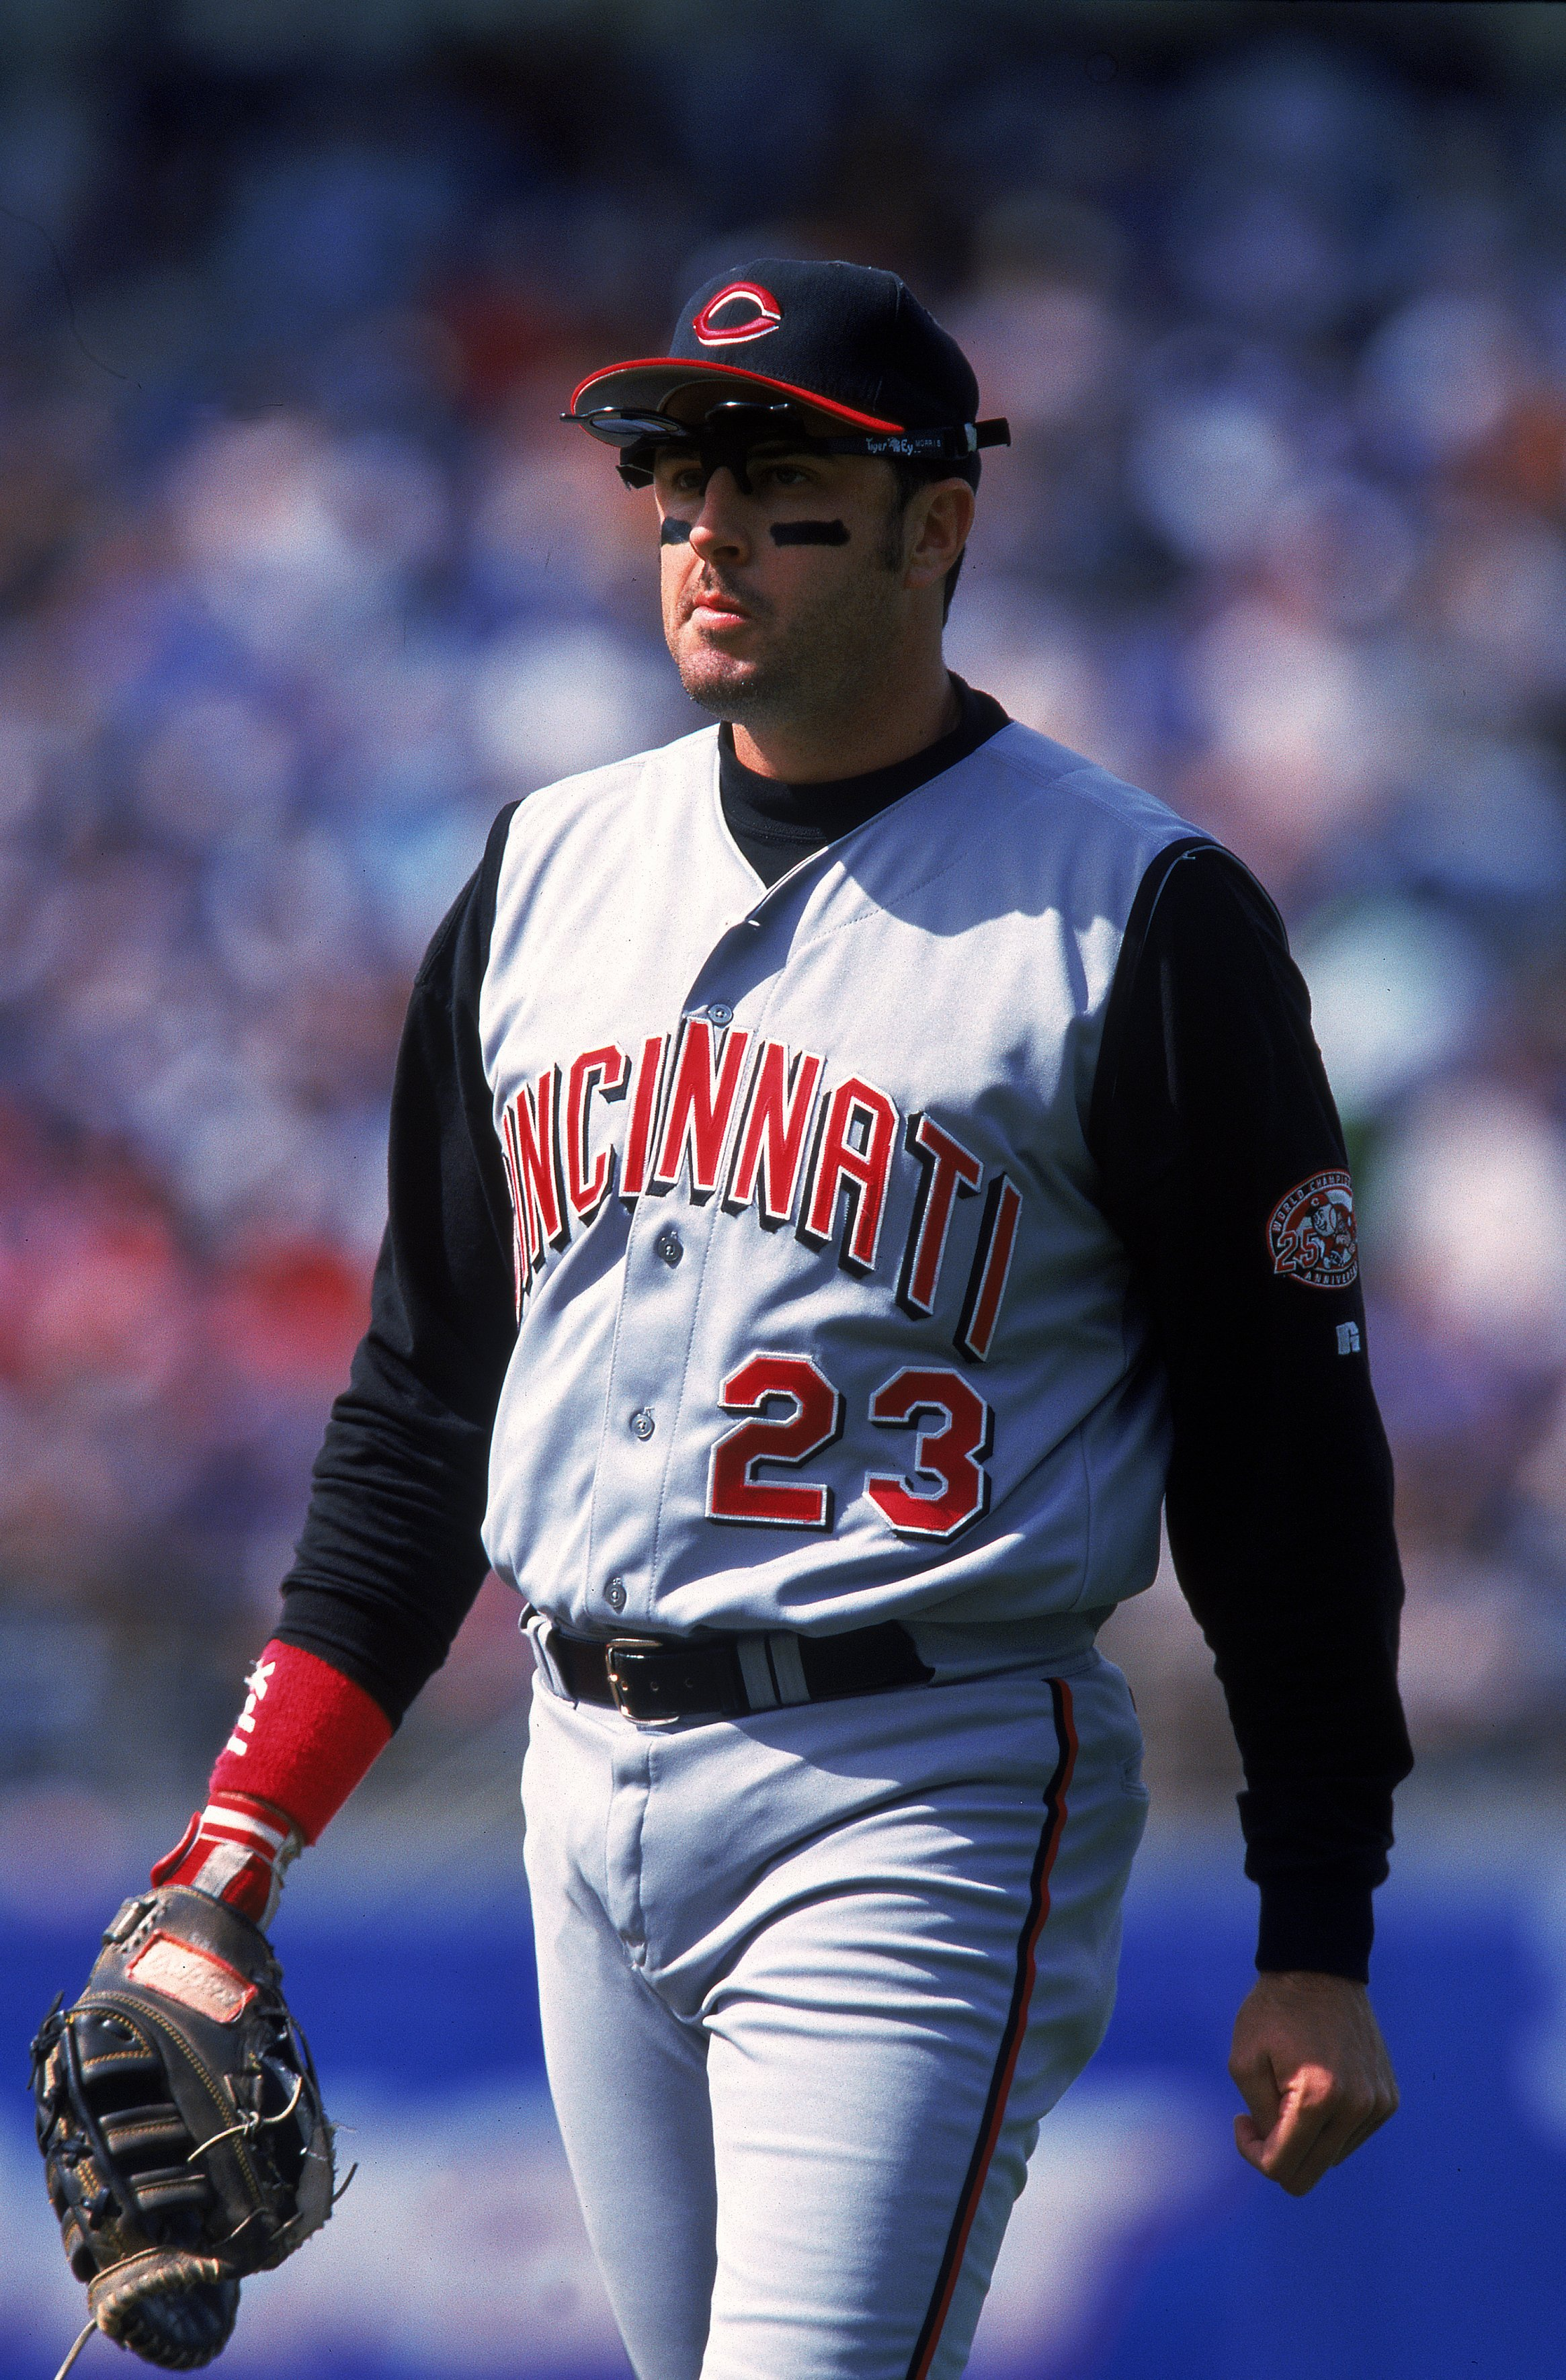 16 Apr 2000: Hal Morris #23 of the Cincinnati Reds walks on the field during the game against the Los Angeles Dodgers at Dodger Stadium in Los Angeles, California. The Reds defeated the Dodgers 5-3. Mandatory Credit: Tom Hauck  /Allsport